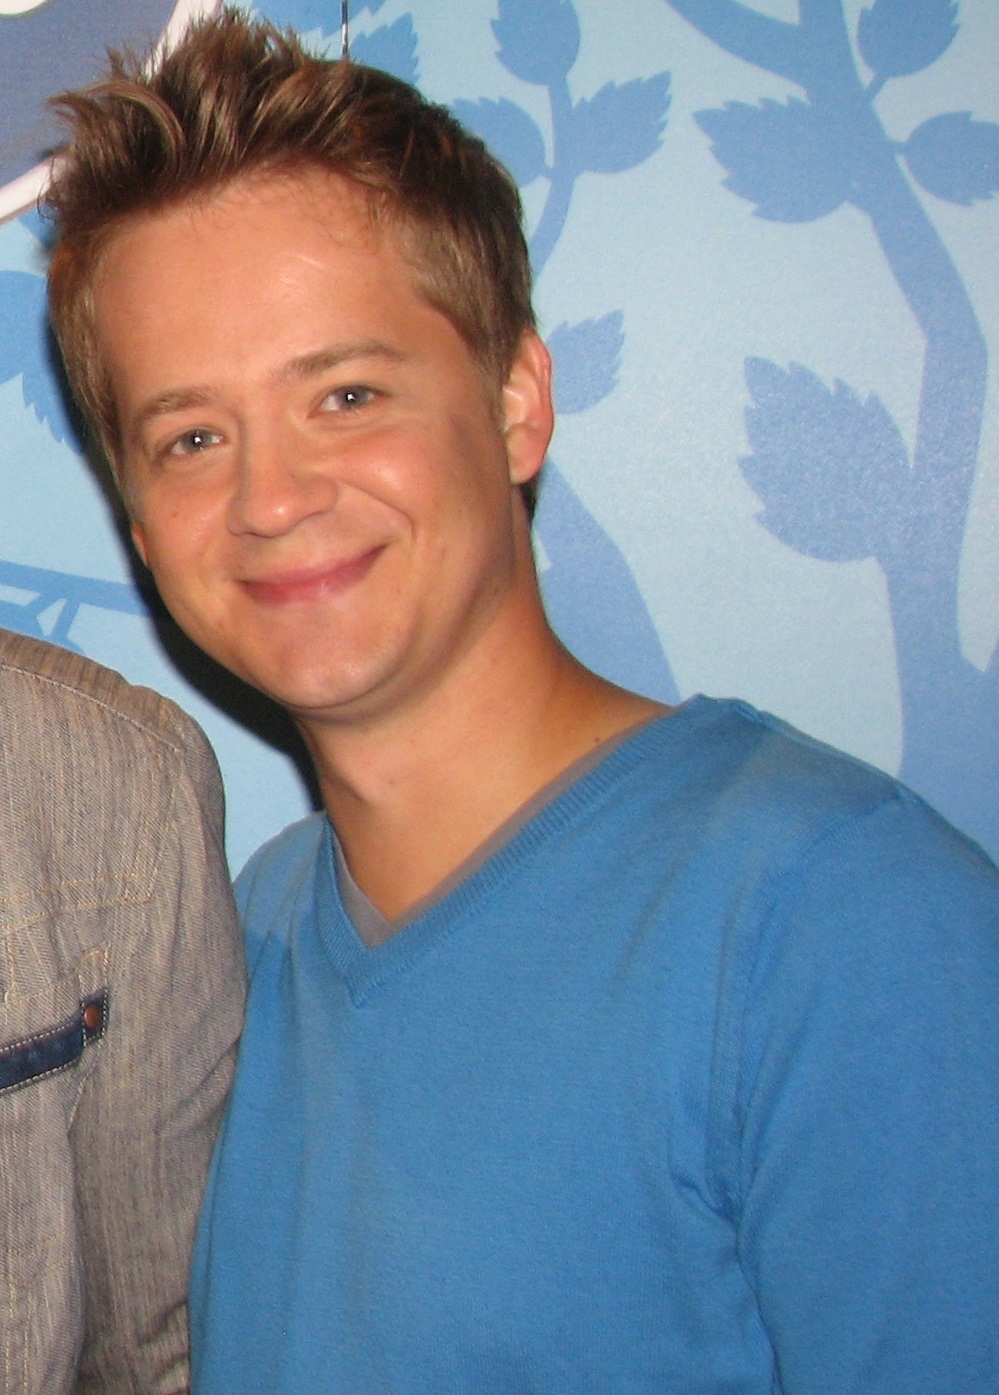 The 41-year old son of father (?) and mother(?), 165 cm tall Jason Earles in 2018 photo